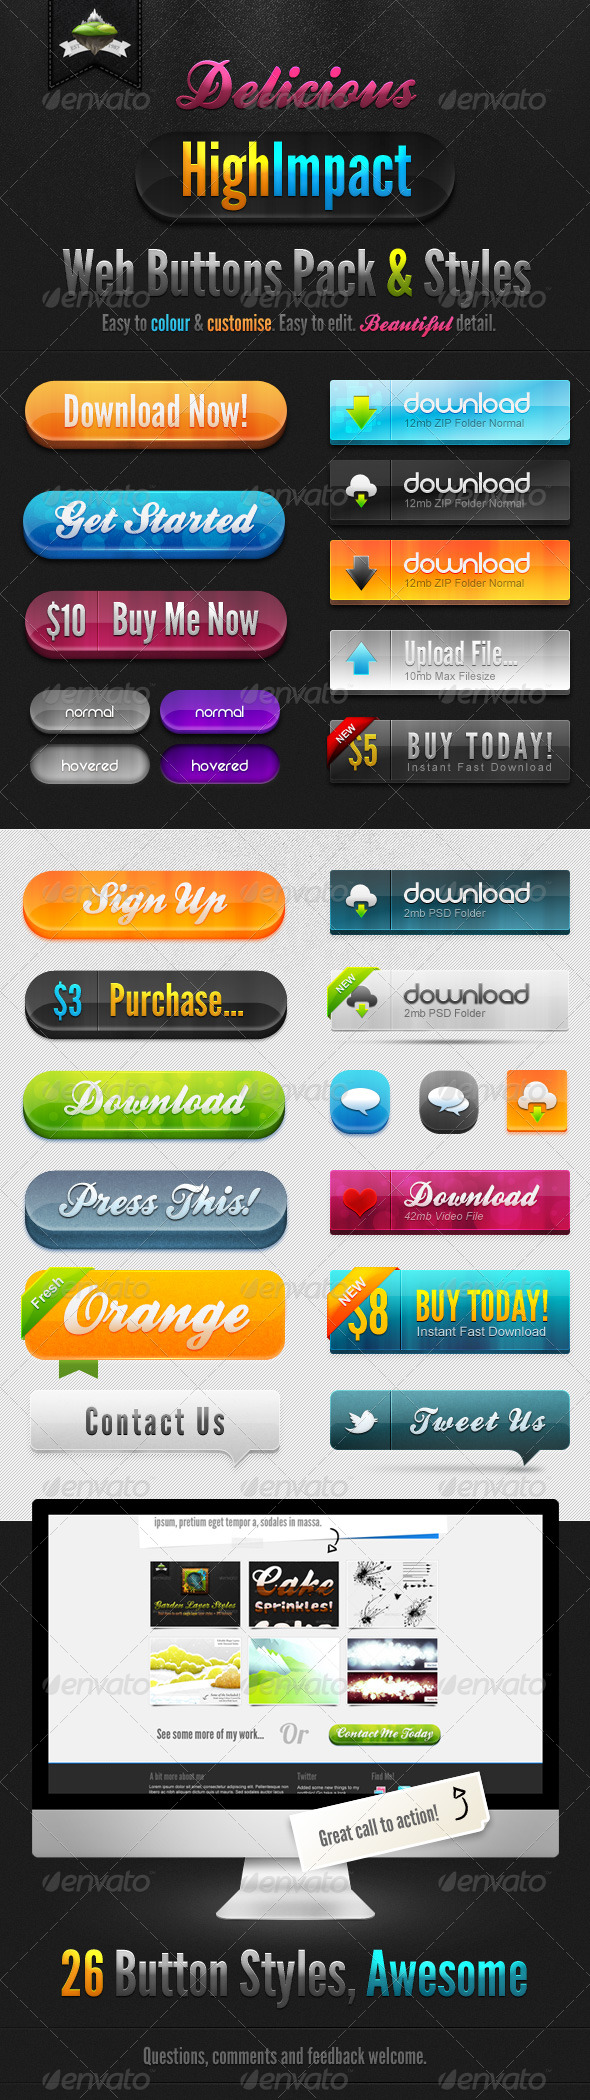 GraphicRiver Delicious High Impact Web Buttons Pack & Styles 166147